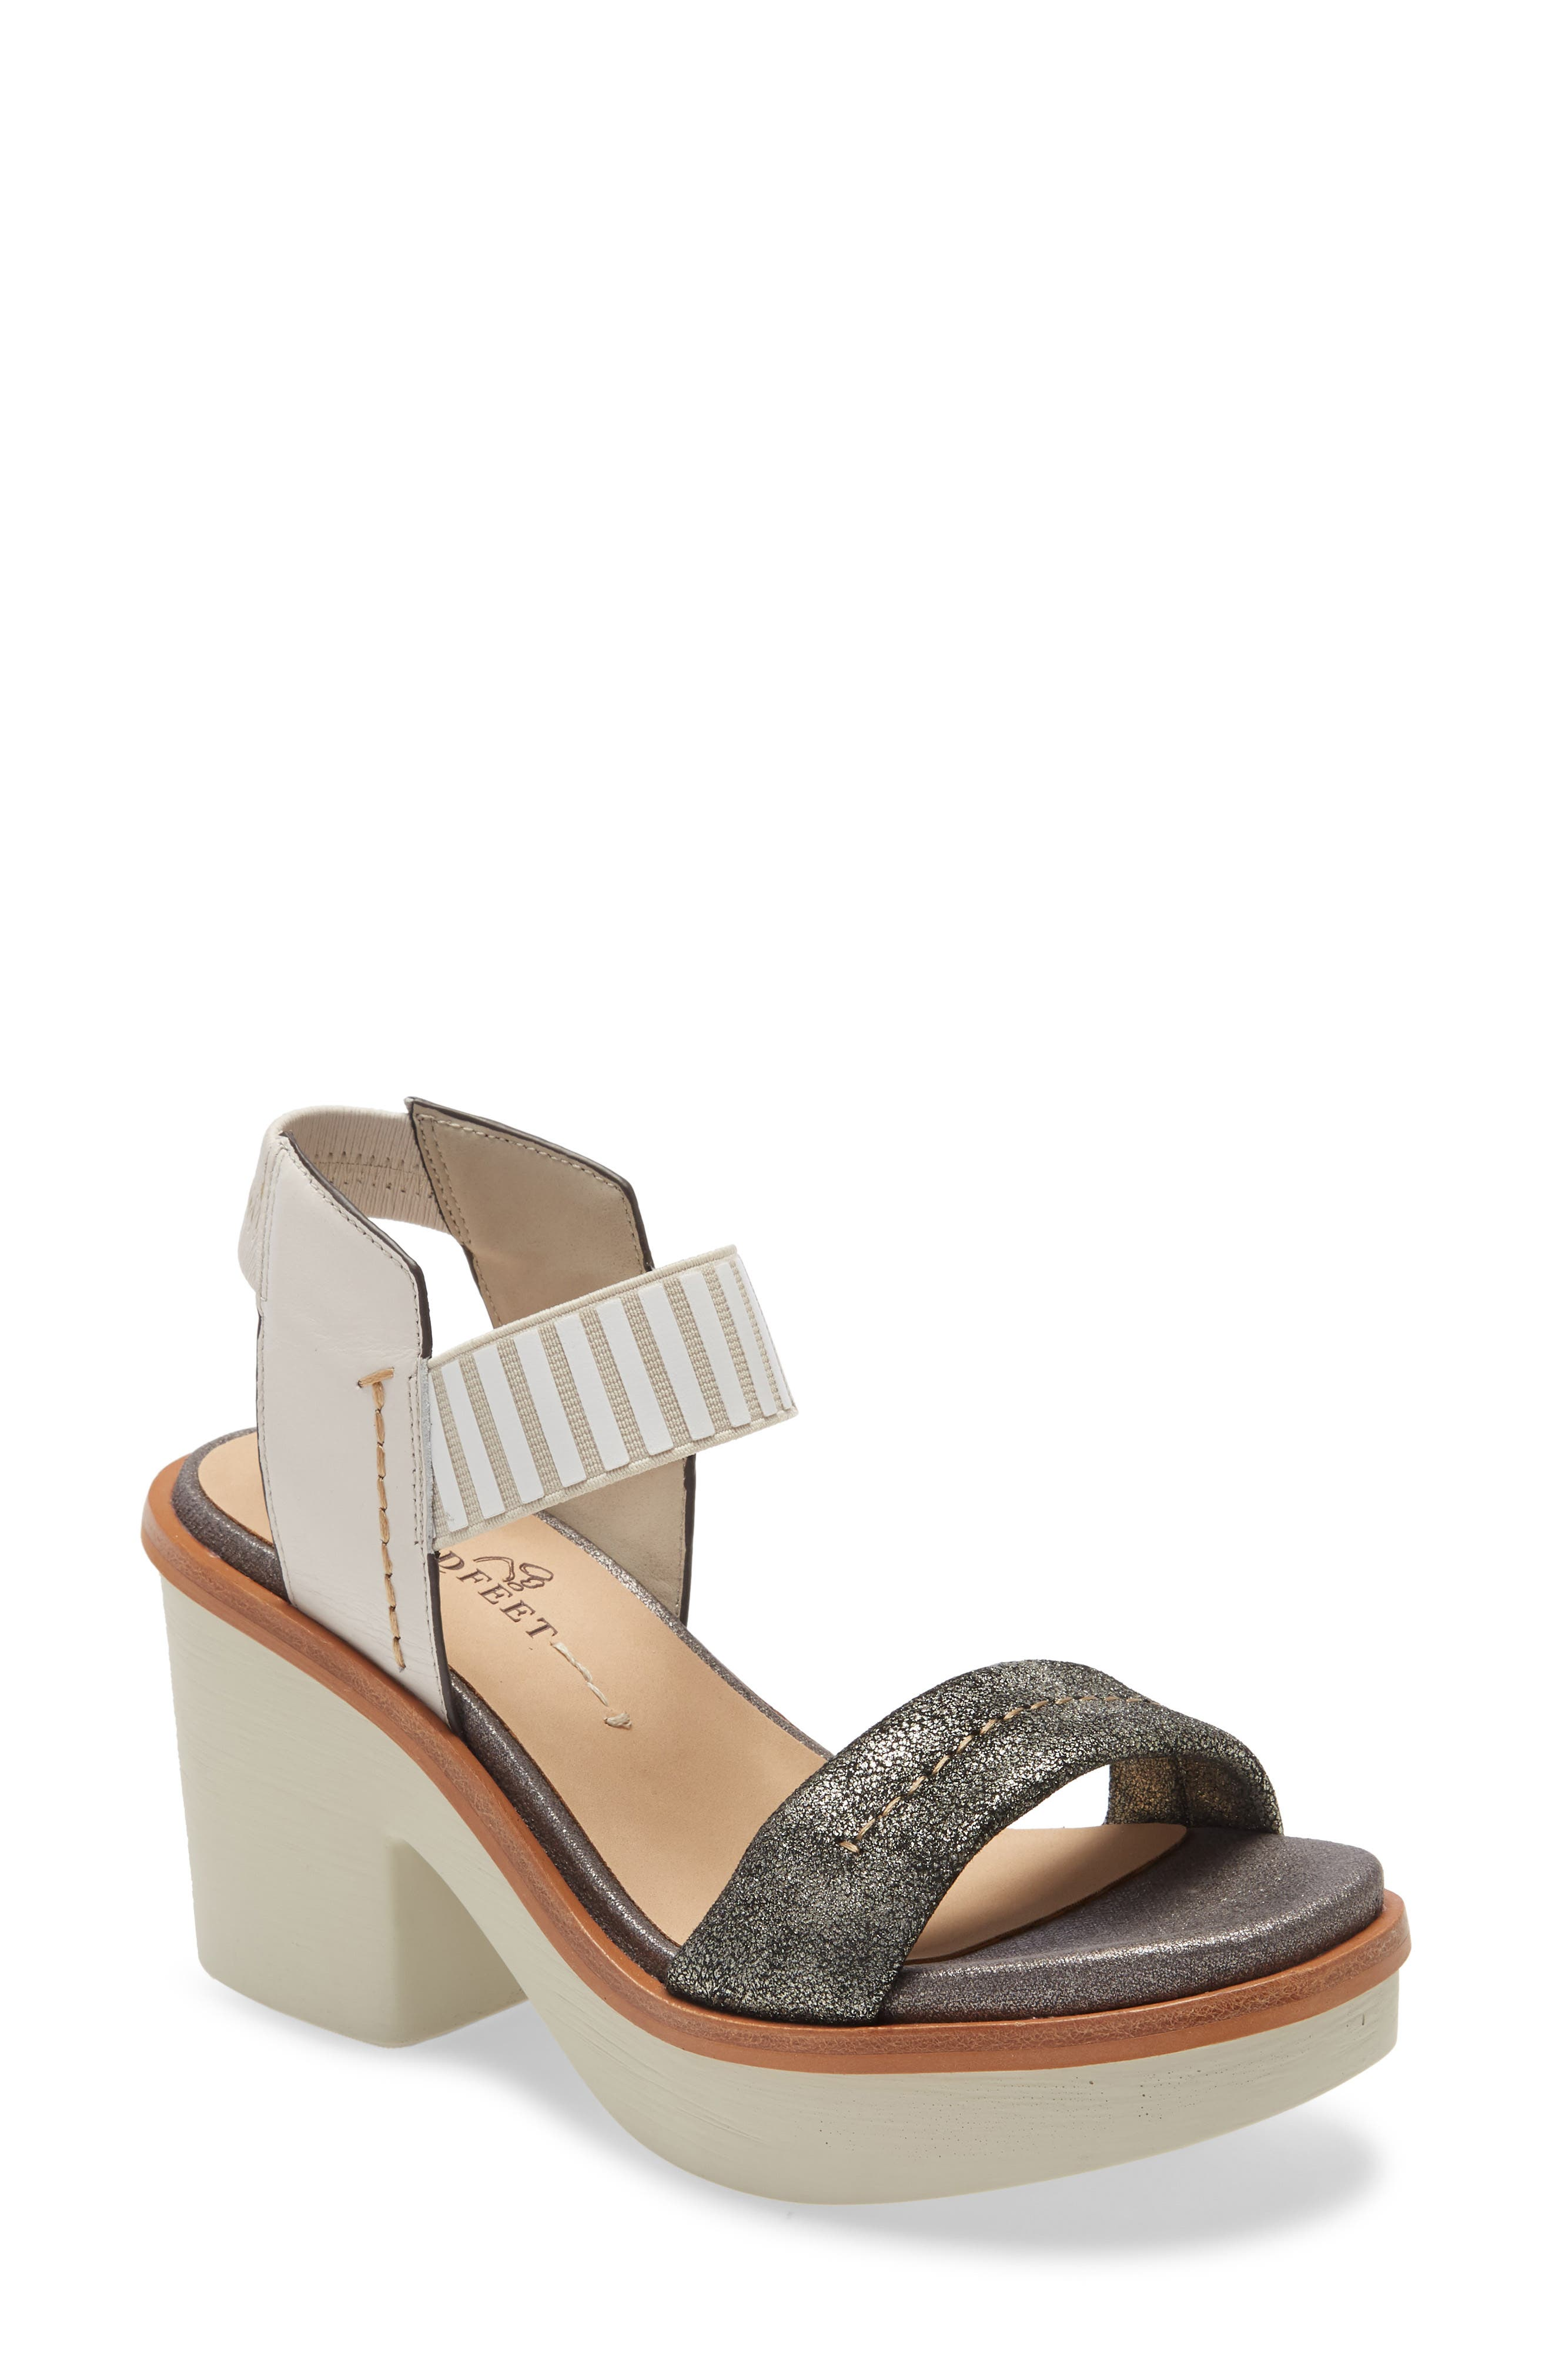 Mixed-media construction and a chunky rocker sole make this supple leather sandal even more fun to wear. Style Name: Naked Feet Basalt Platform Sandal (Women). Style Number: 6042931. Available in stores.